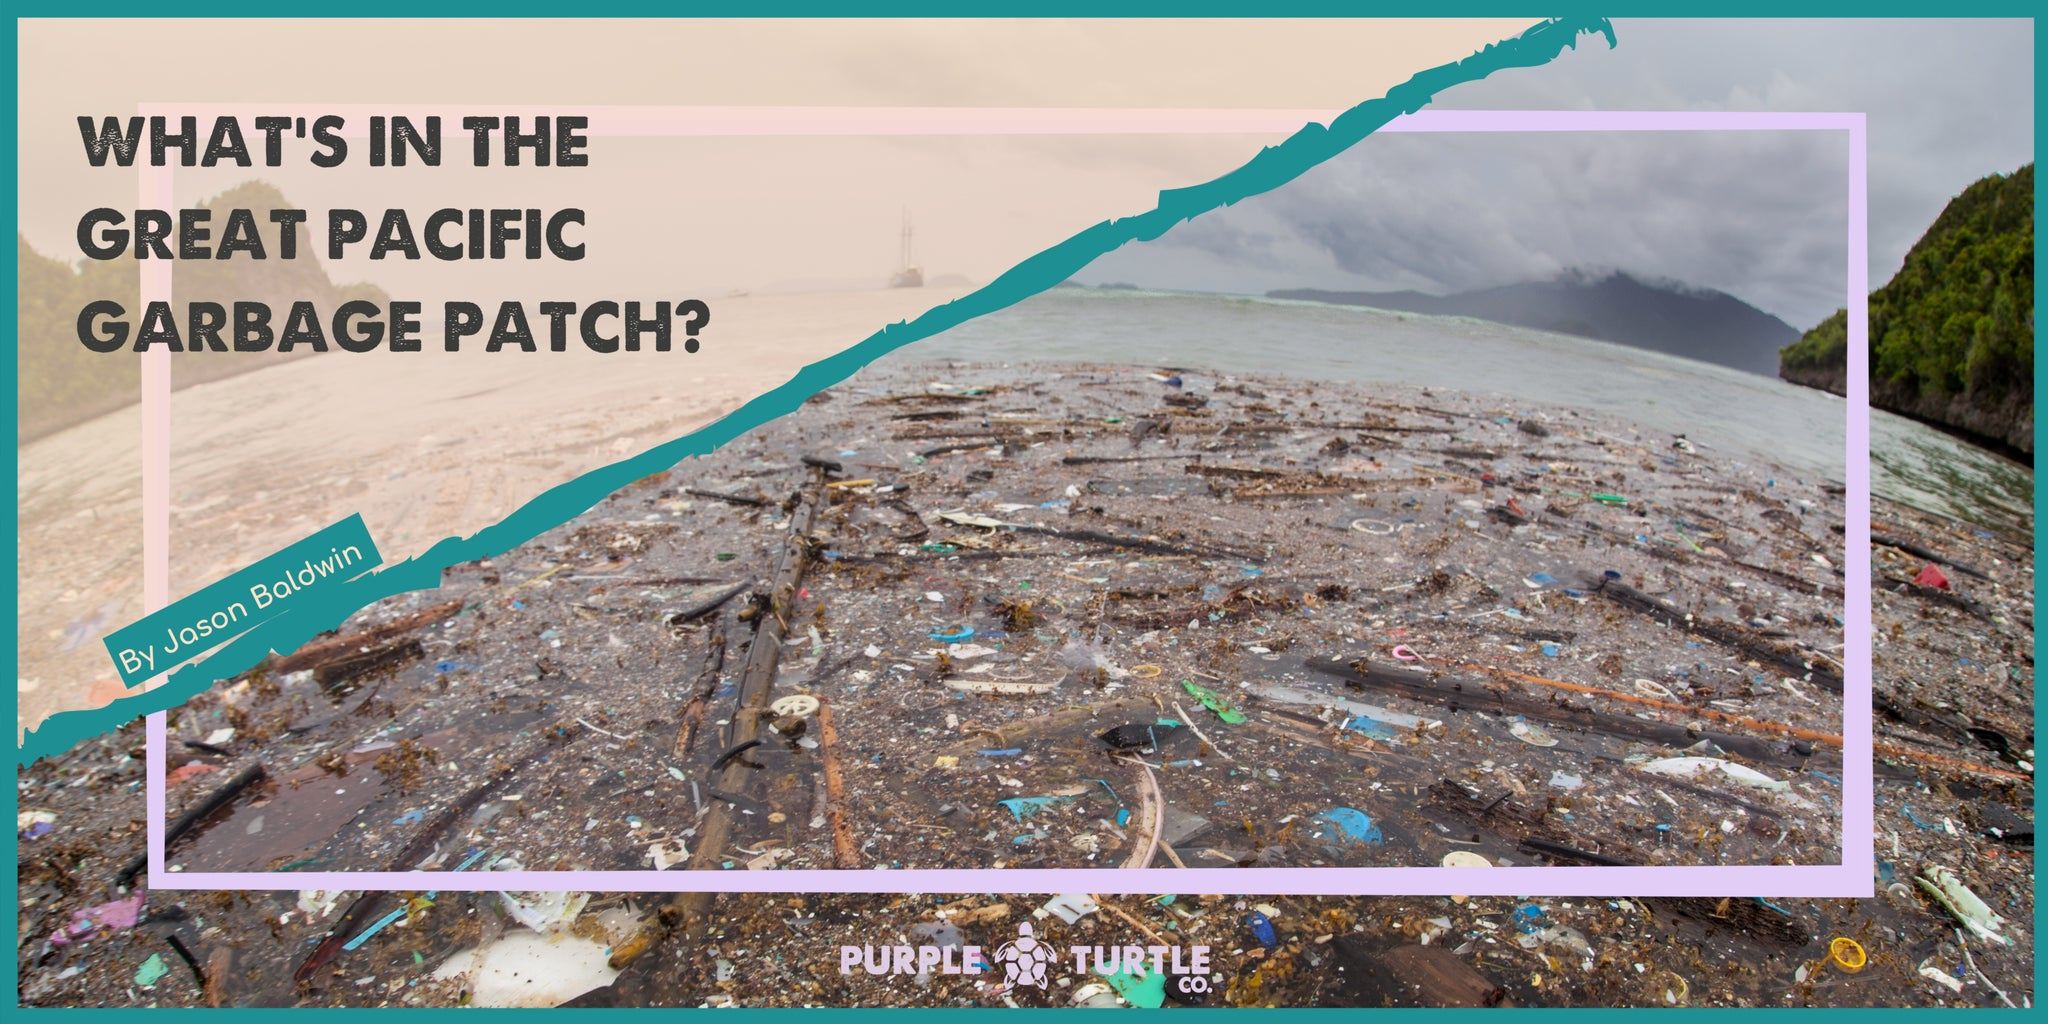 Banner image showing garbage in sea with the article title 'What's in the Pacific Garbage Patch' and the writer's name 'Jason Baldwin'.